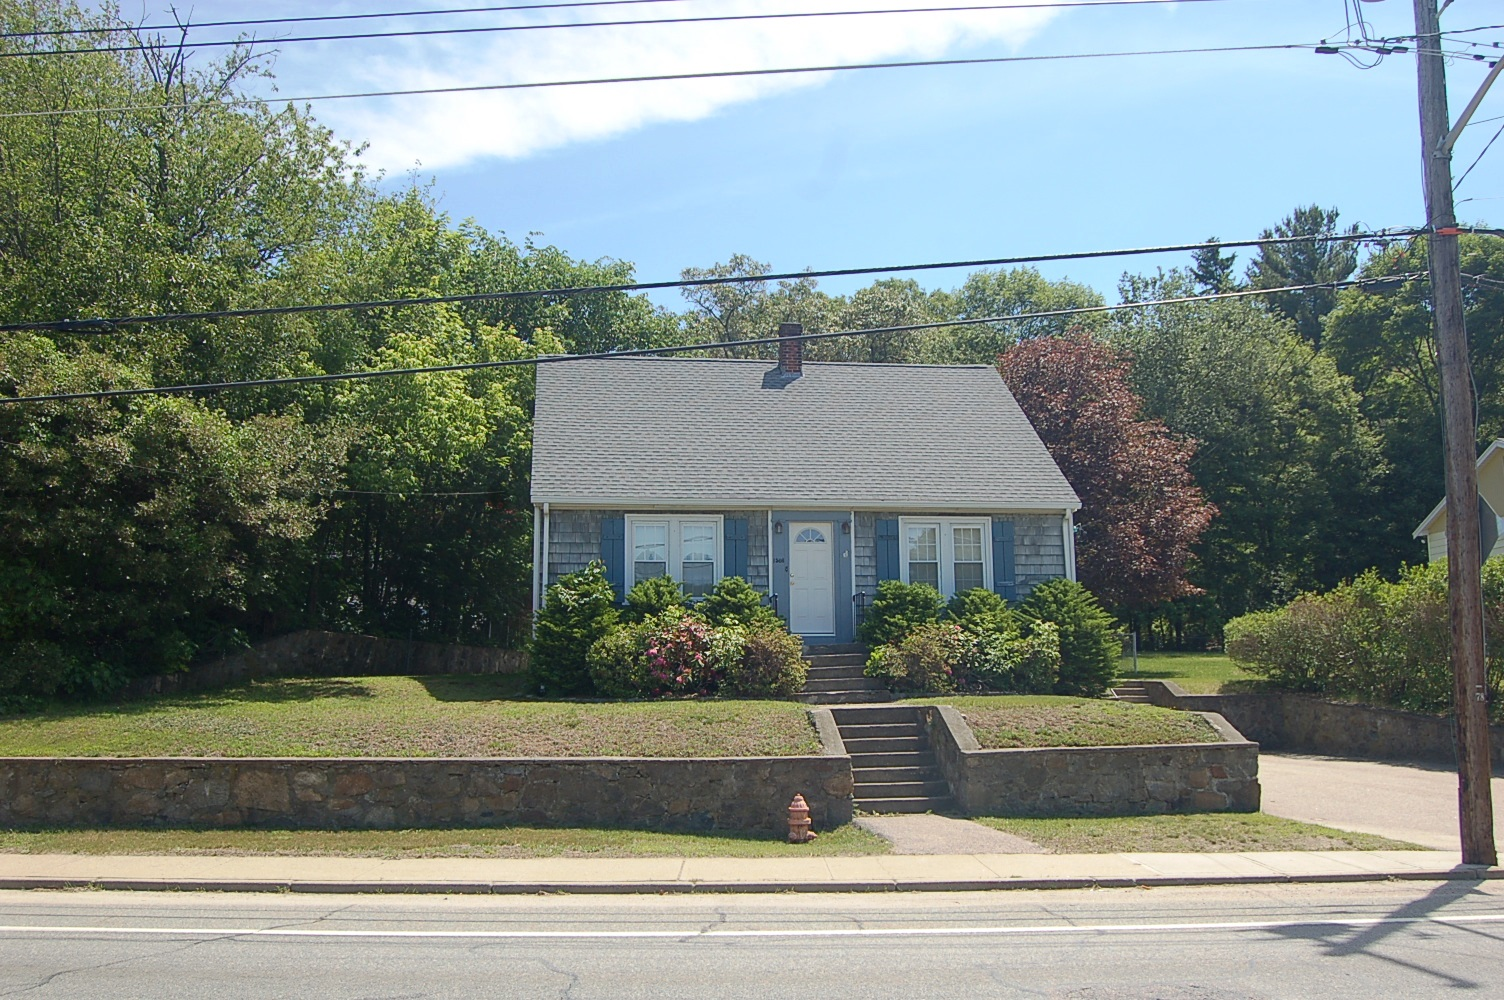 Sold a home in Woonsocket, RI